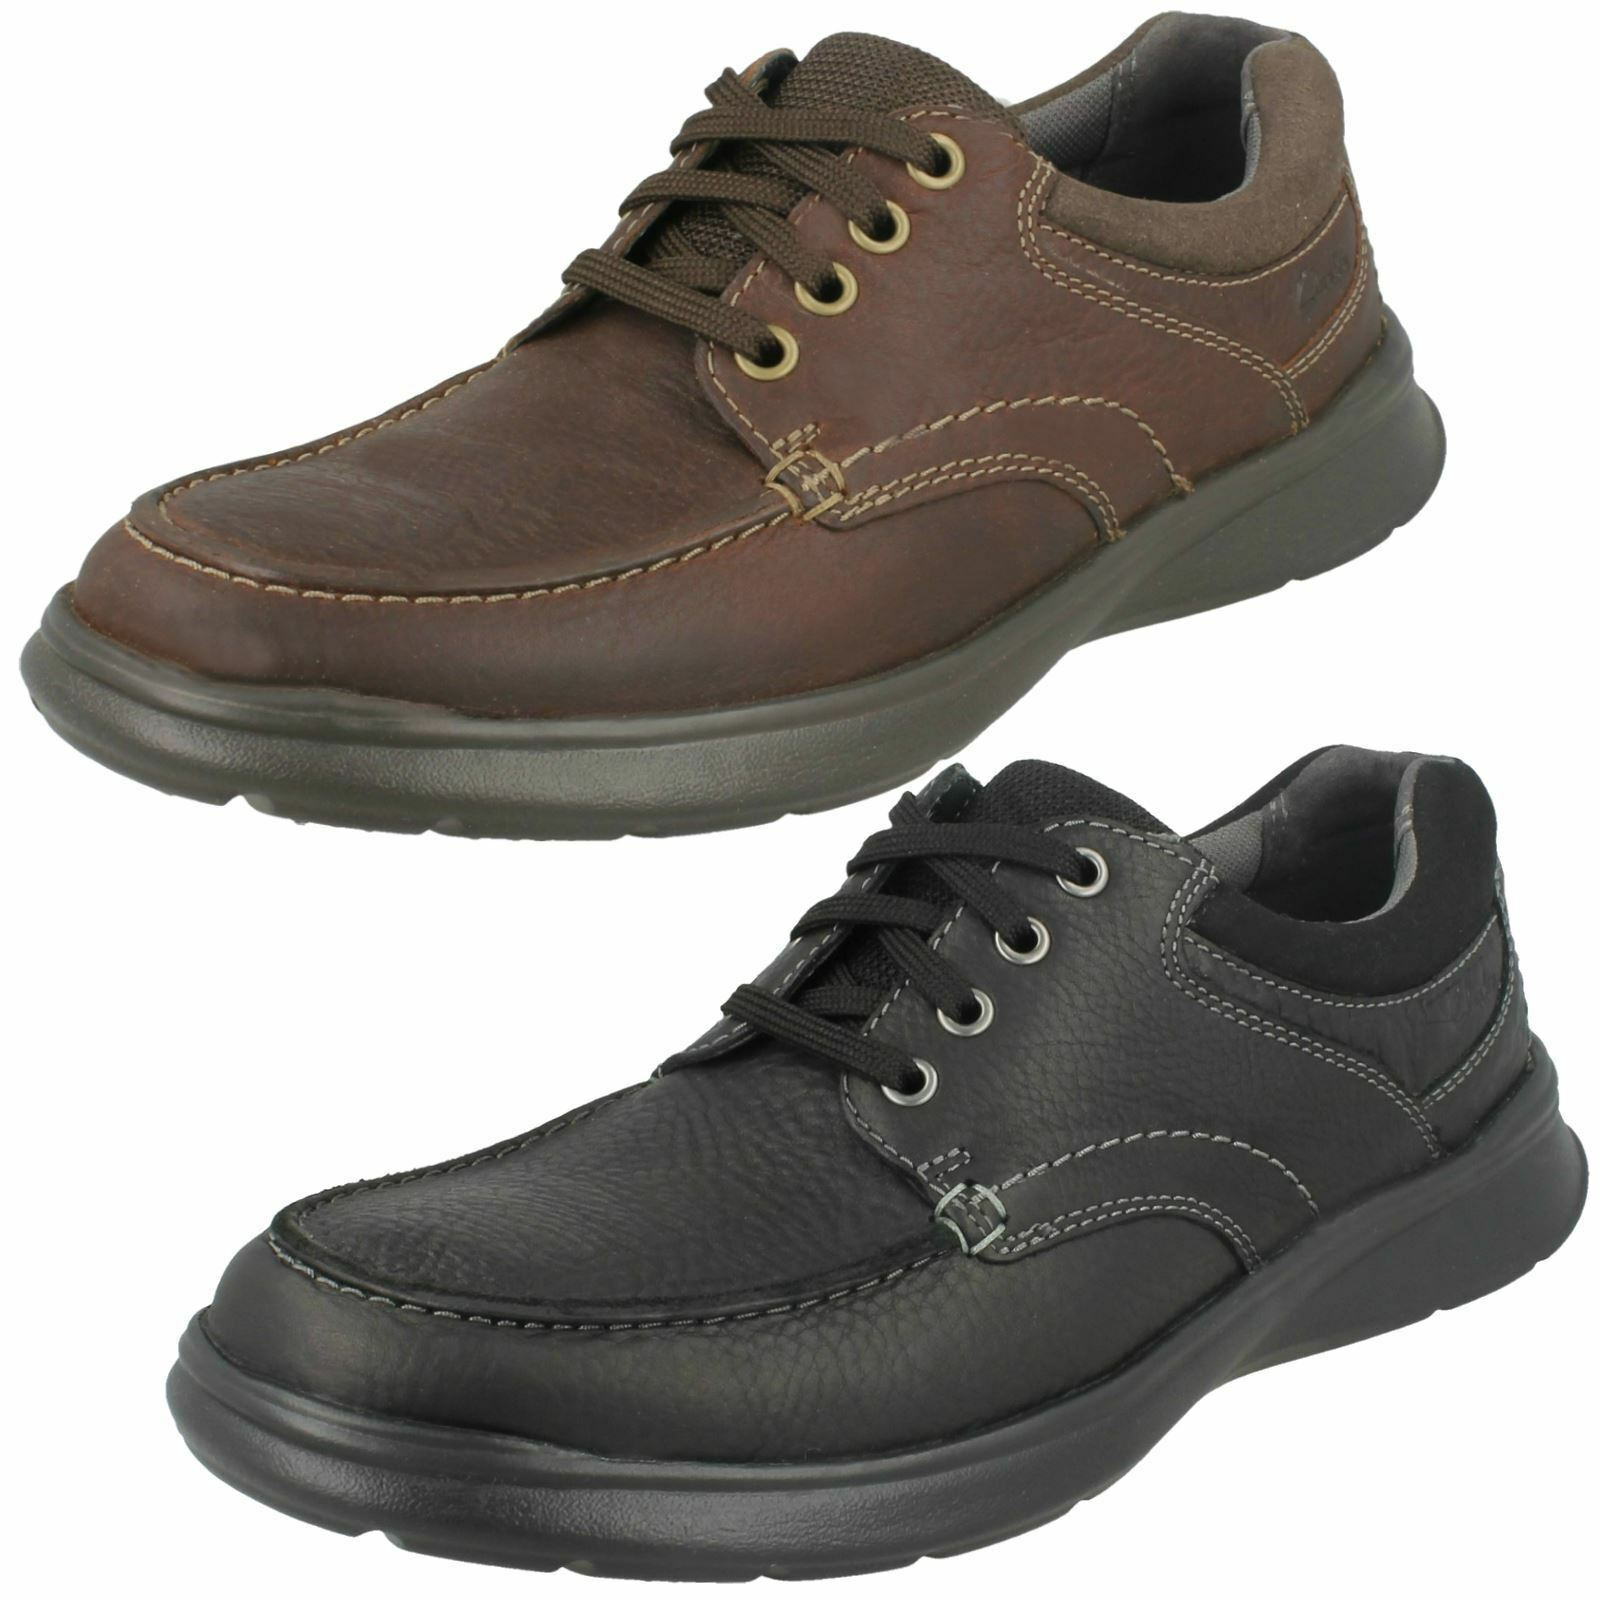 Mens Black/Brown Clarks Leather Lace Up Light Weight Shoes Cotrell Edge